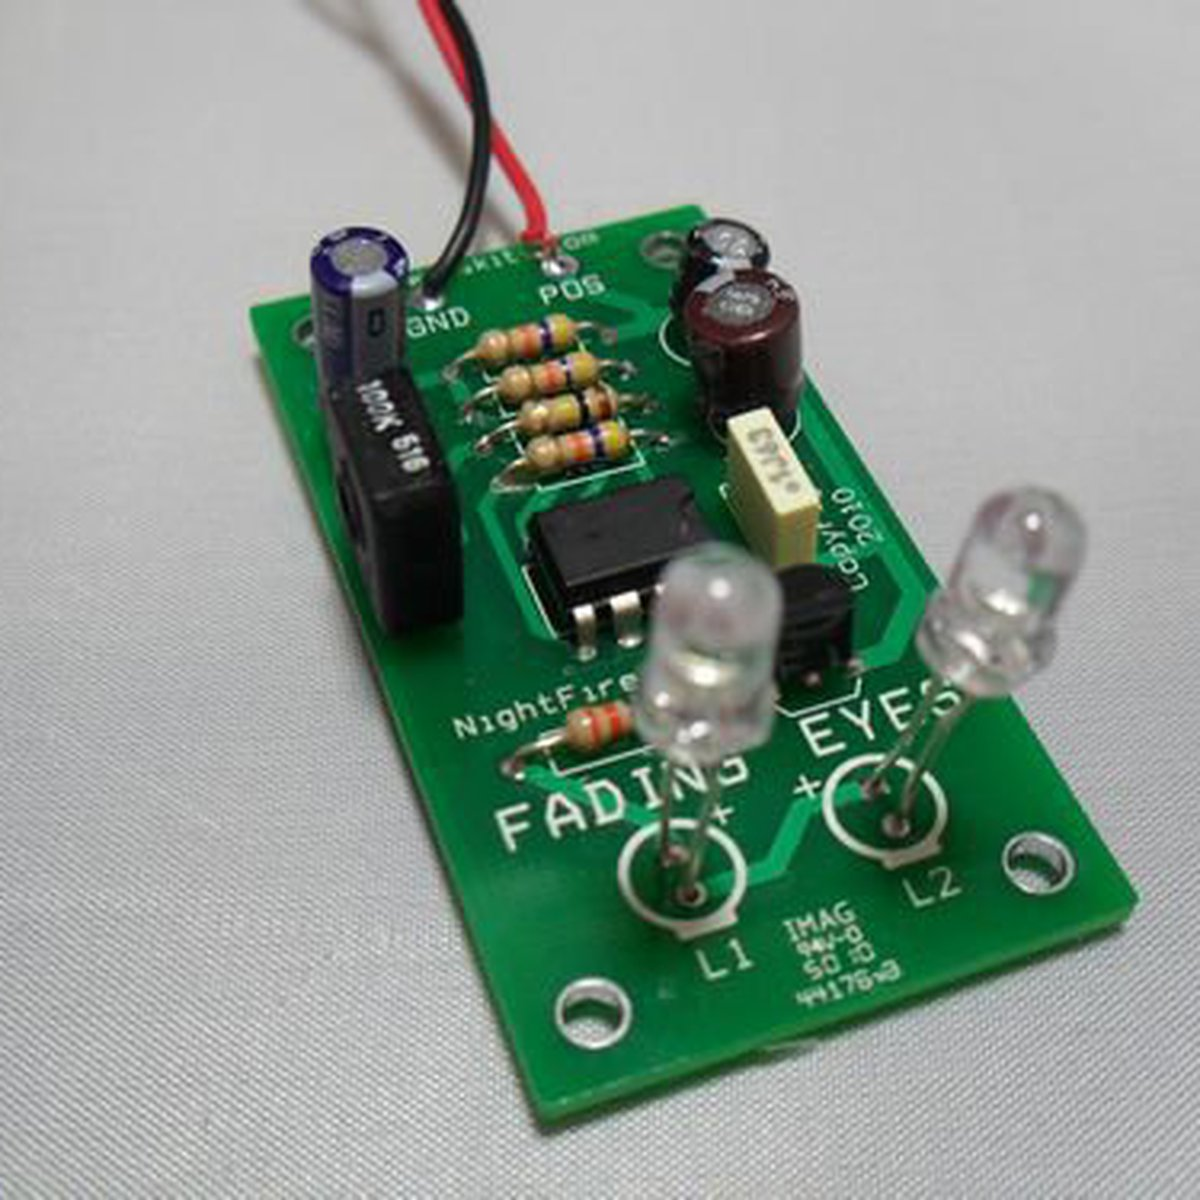 Fading Eyes Led Kit 1642 From Nightfire Electronics Llc On Tindie Making A Stripboard Circuit Building And Soldering Flasher